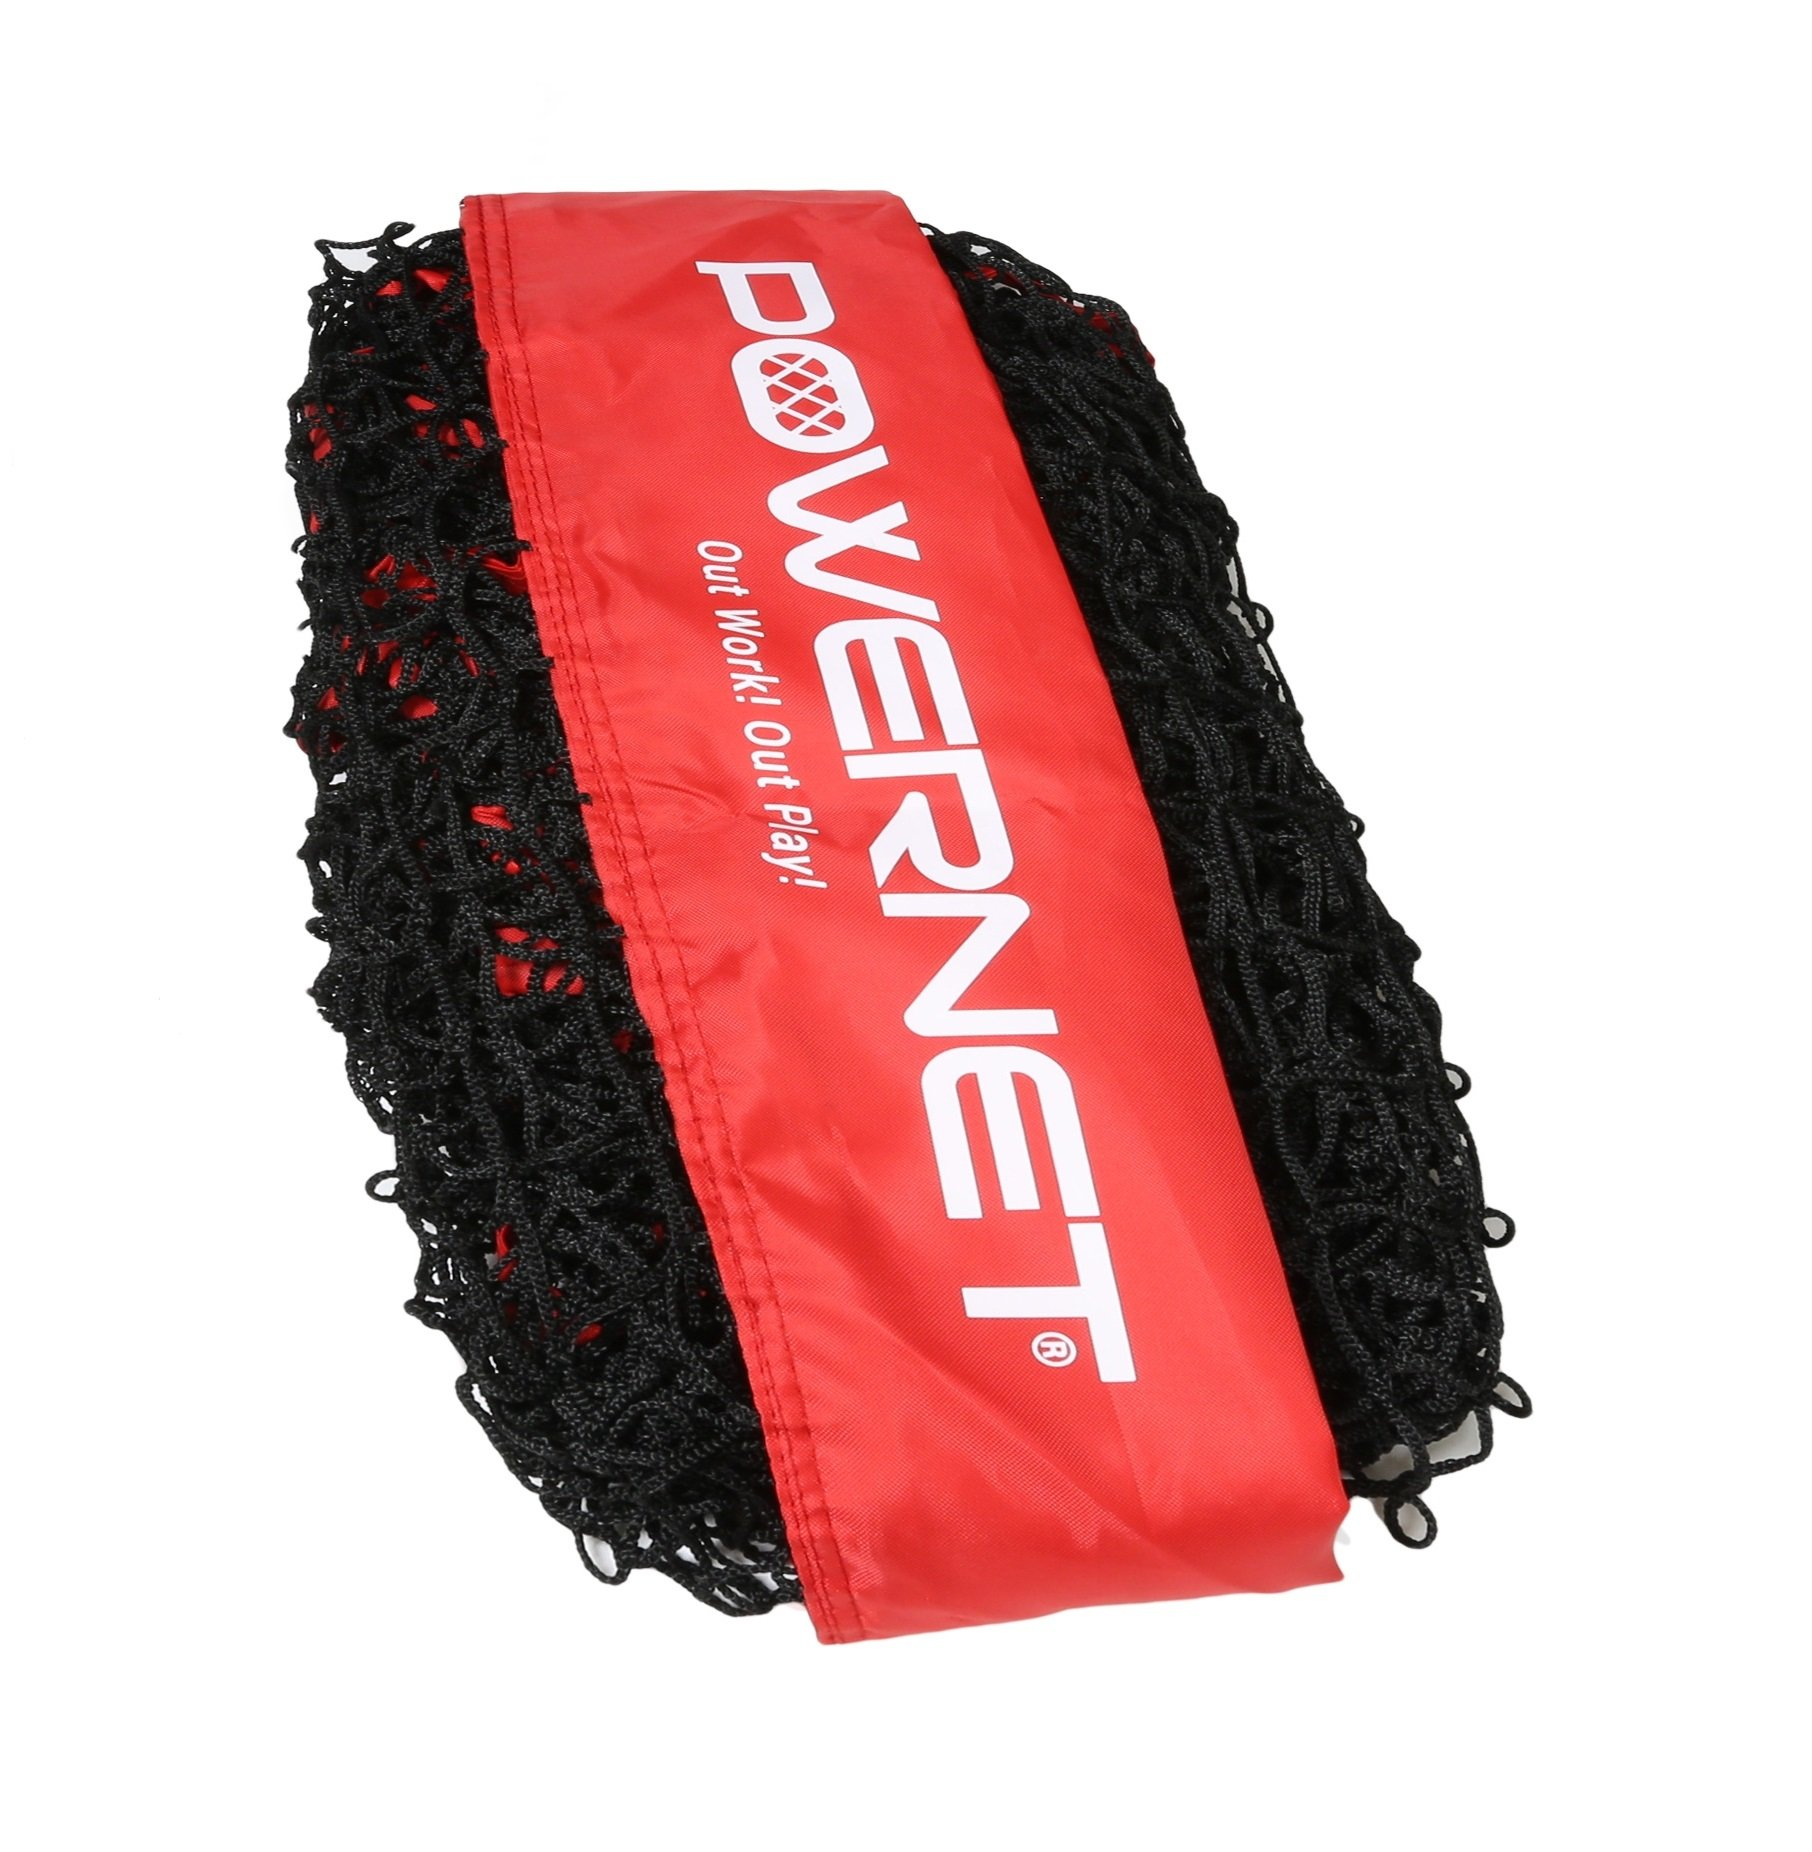 PowerNet Team Color Nets Baseball and Softball 7x7 Bow Style (NET ONLY) Replacement | Red | Heavy Duty Knotless | Durable PU Coated Polyester | Double Stitched Seams for Extra Strength (RED) by PowerNet